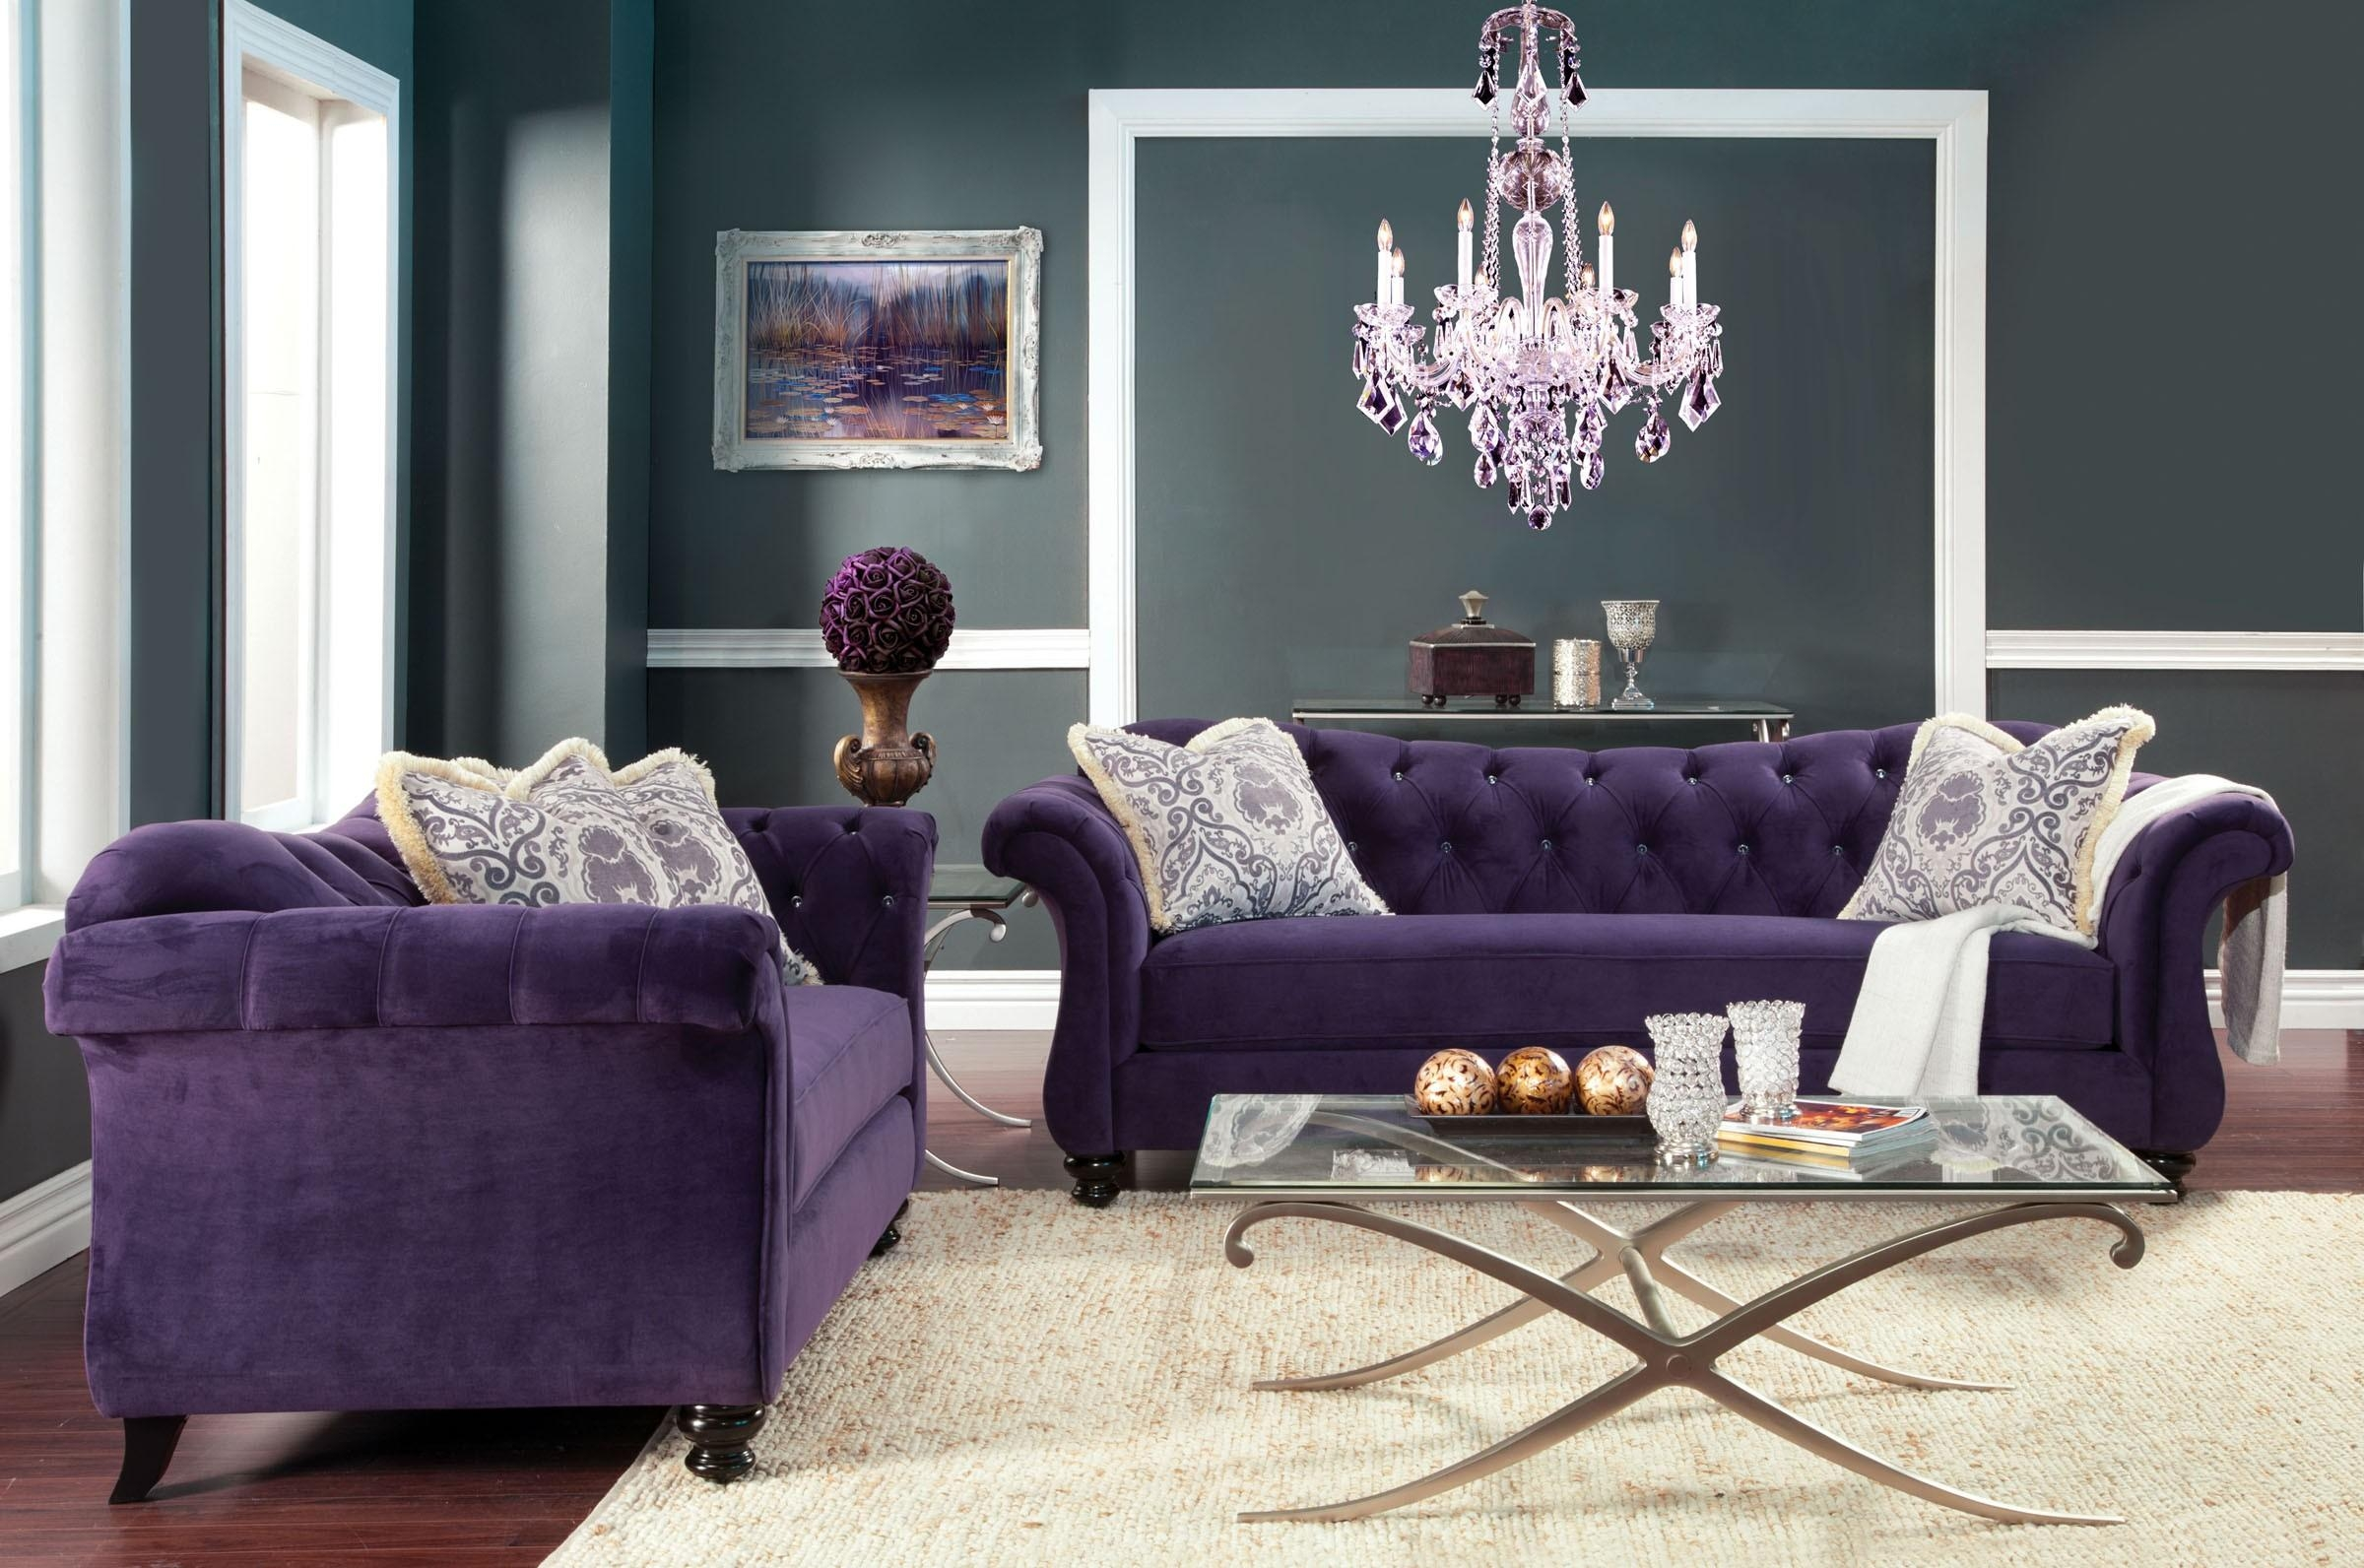 25 Best Chesterfield Sofas To Buy In 2017 Throughout Purple Chesterfield Sofas (View 3 of 20)